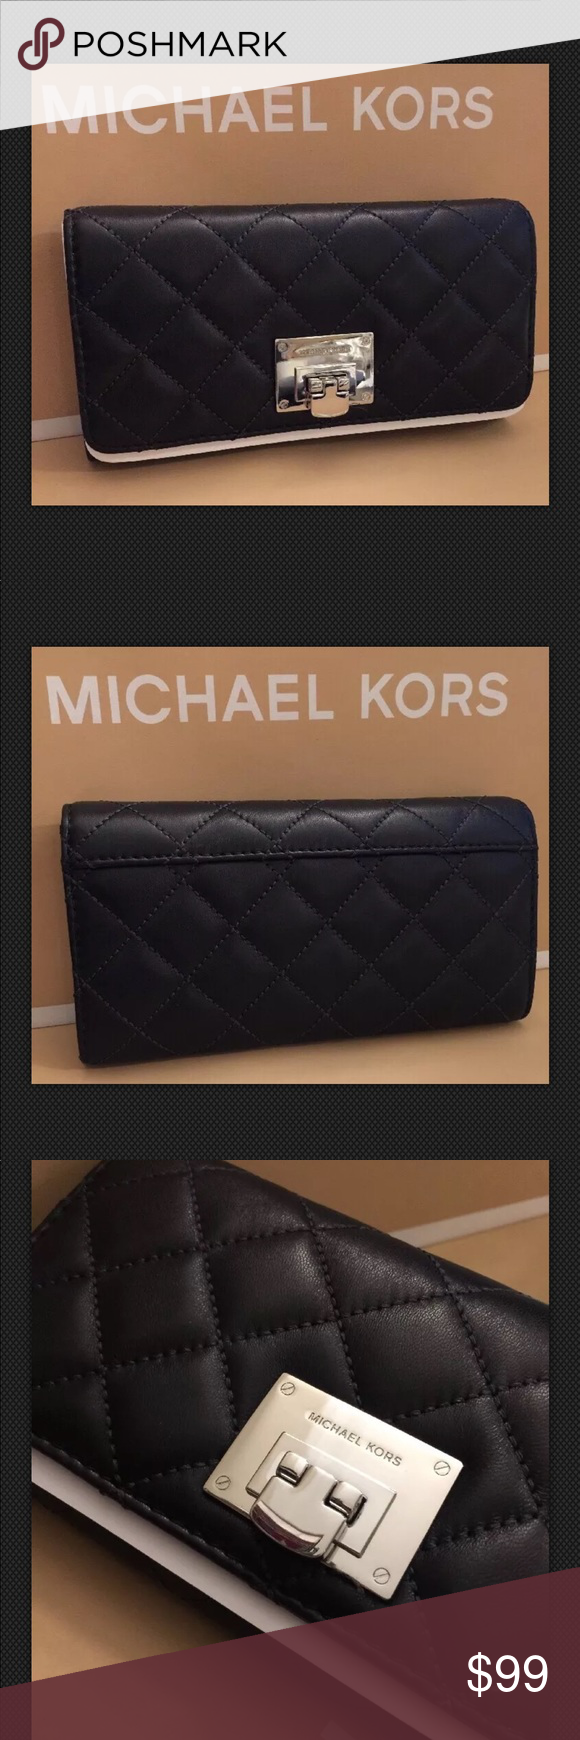 4fd25bc0b3f958 Michael Kors ASTRID Quilted Lthr Wallet-Black-NWT 100% AUTHENTIC! NEW WITH